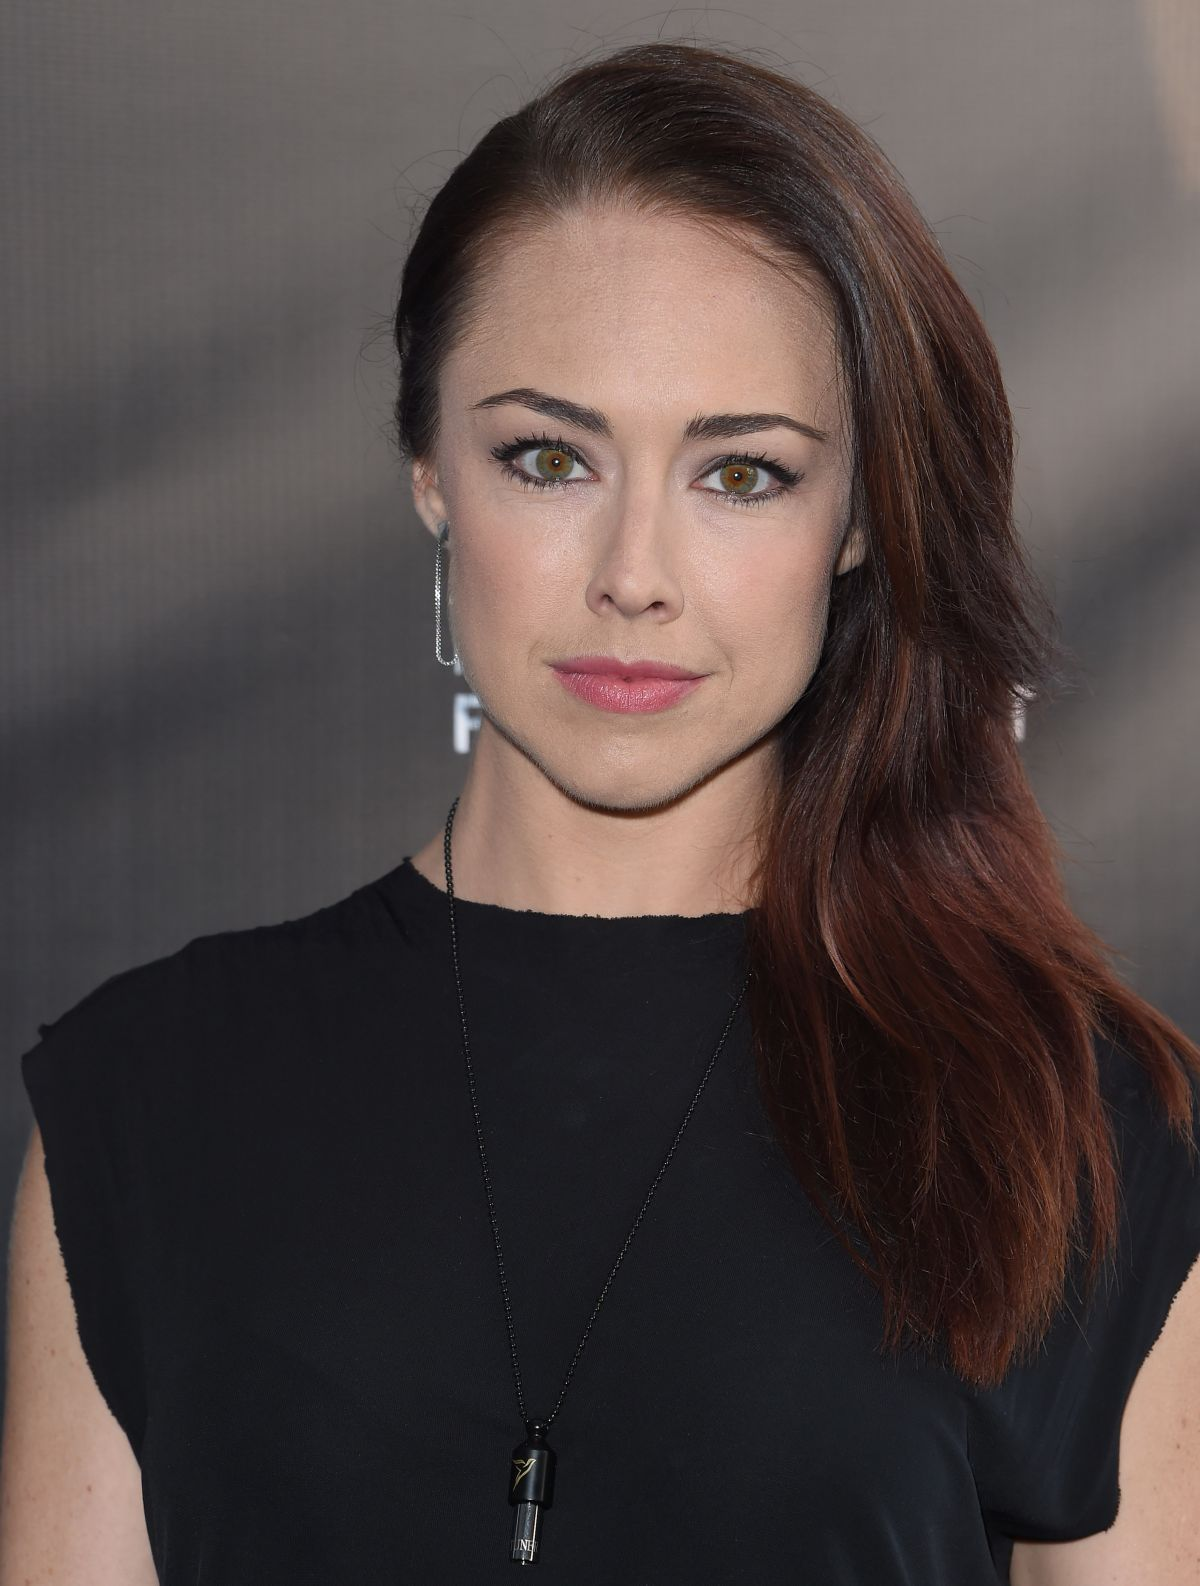 Lindsey Mckeon Hawtcelebs She is known for her roles as marah lewis on guiding light and taylor james on one tree hill. lindsey mckeon hawtcelebs